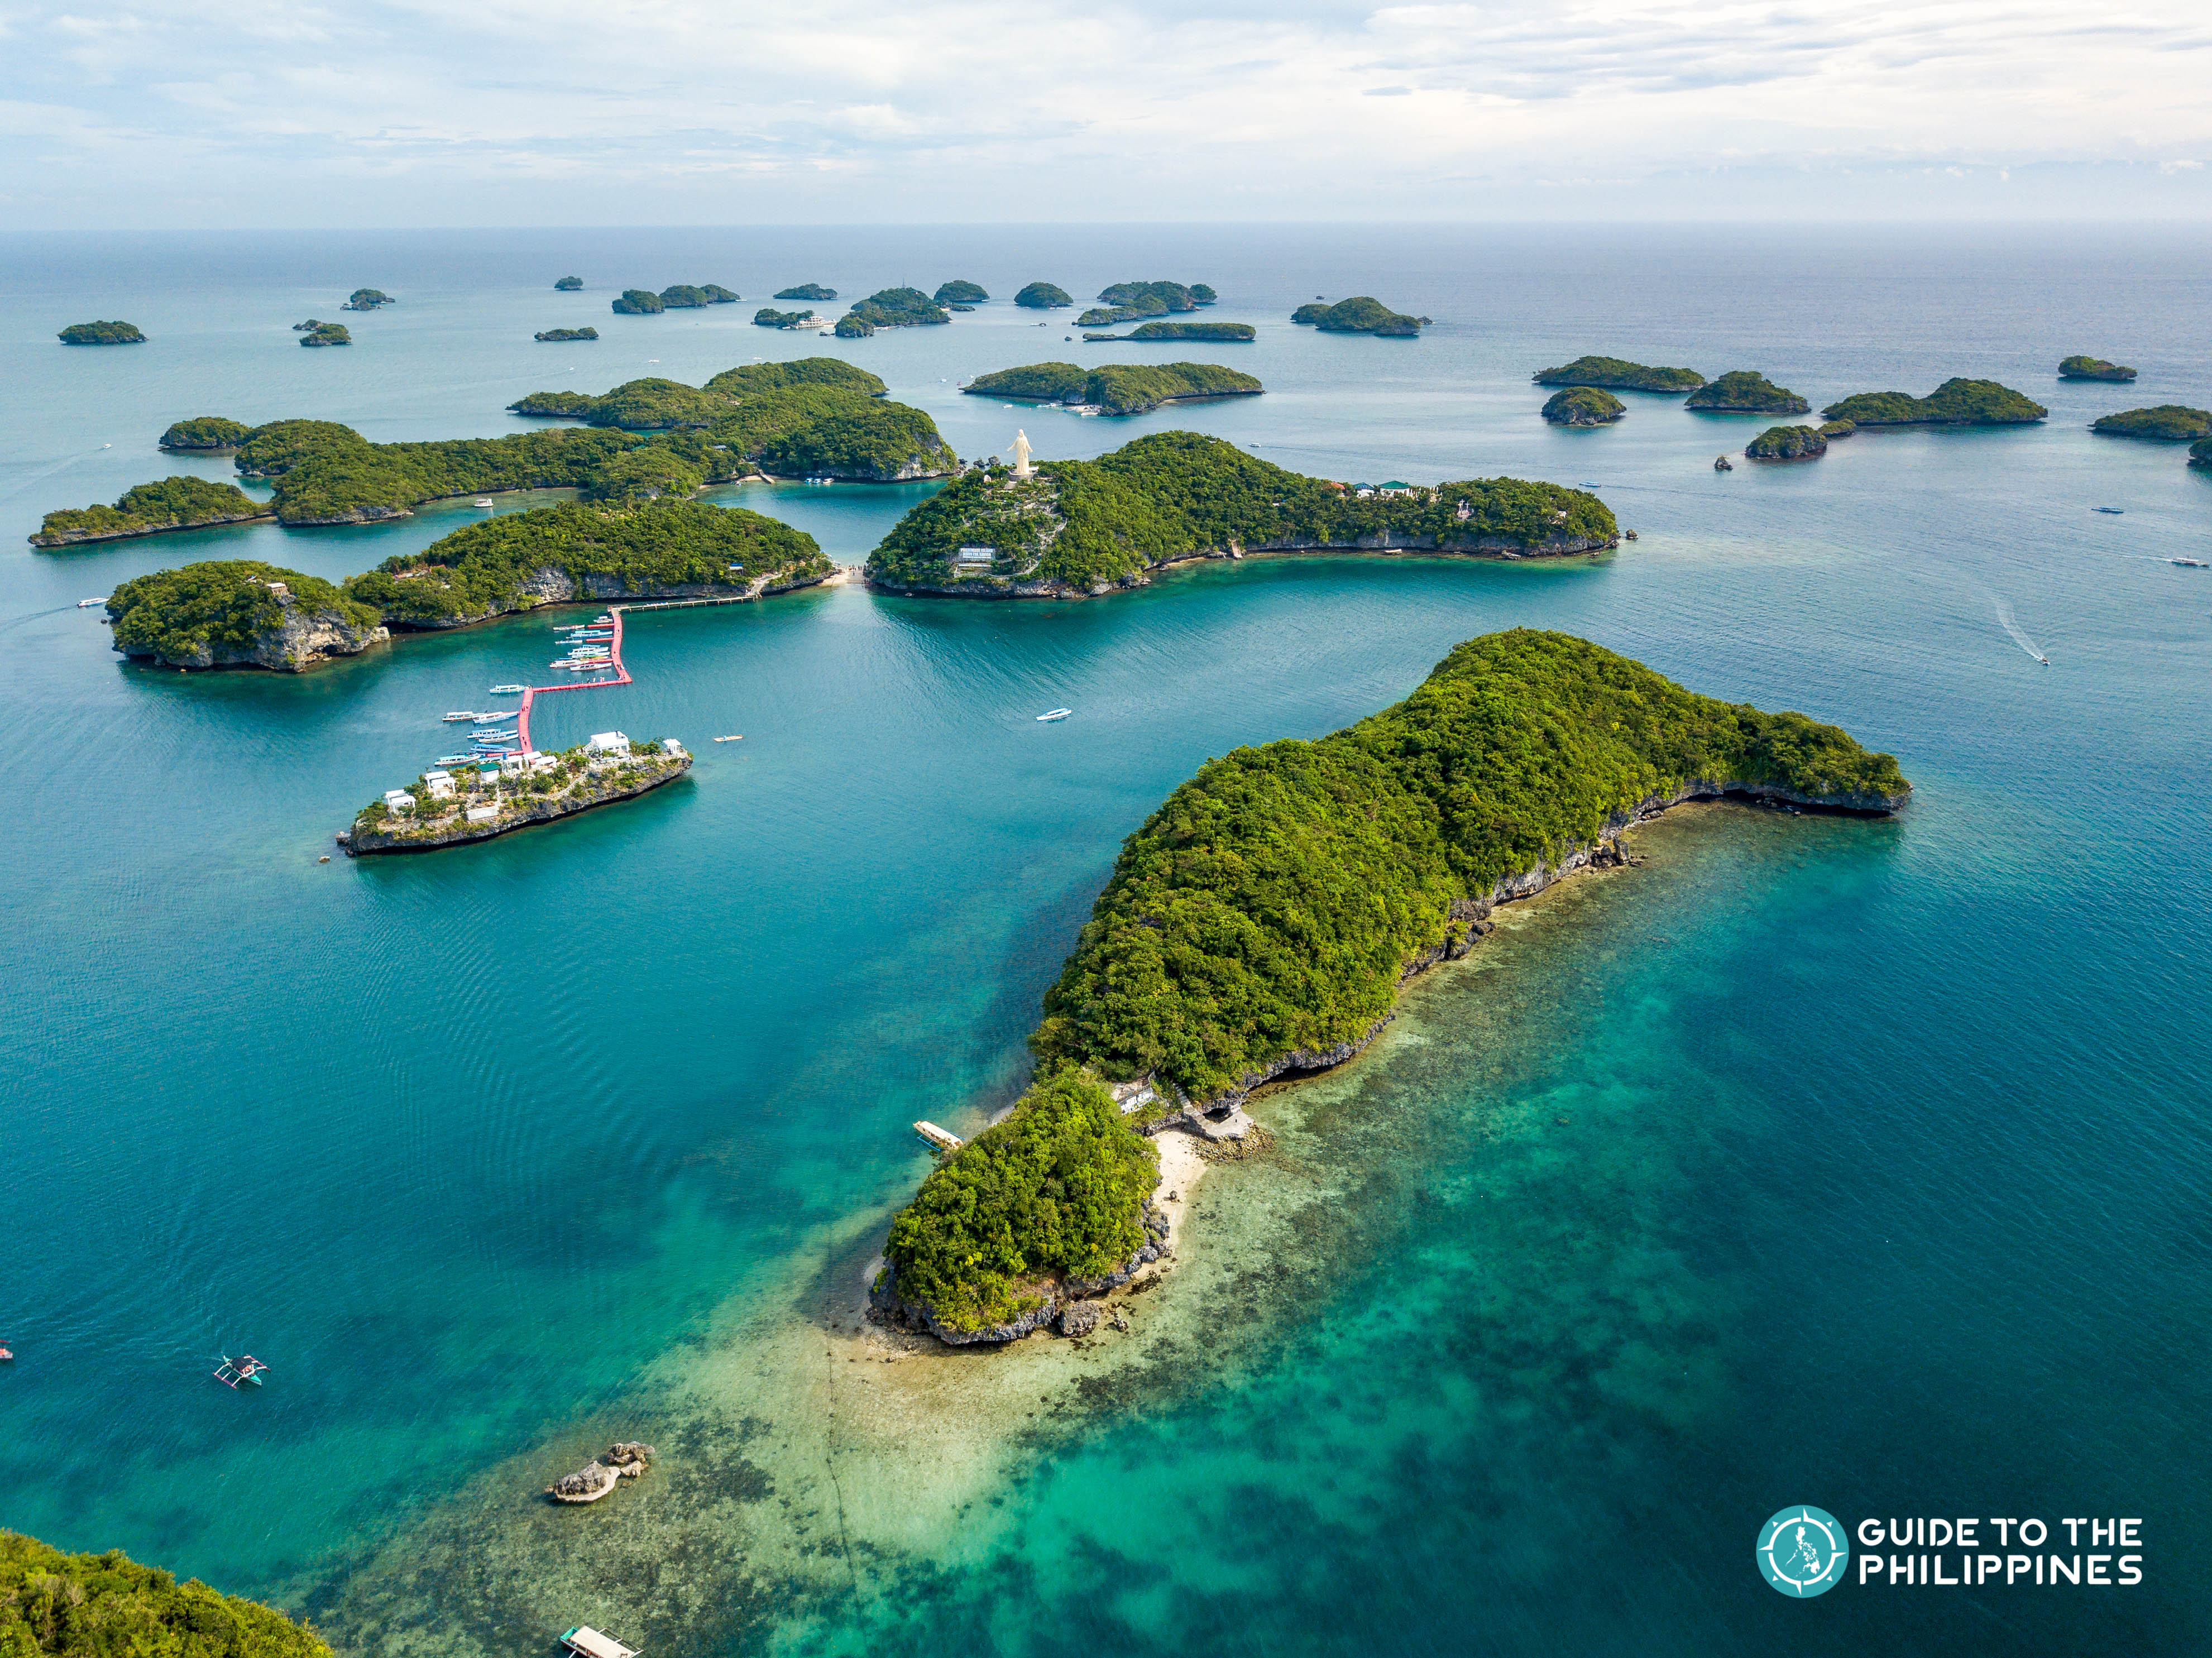 Pangasinan Travel Guide: Home of the Hundred Islands